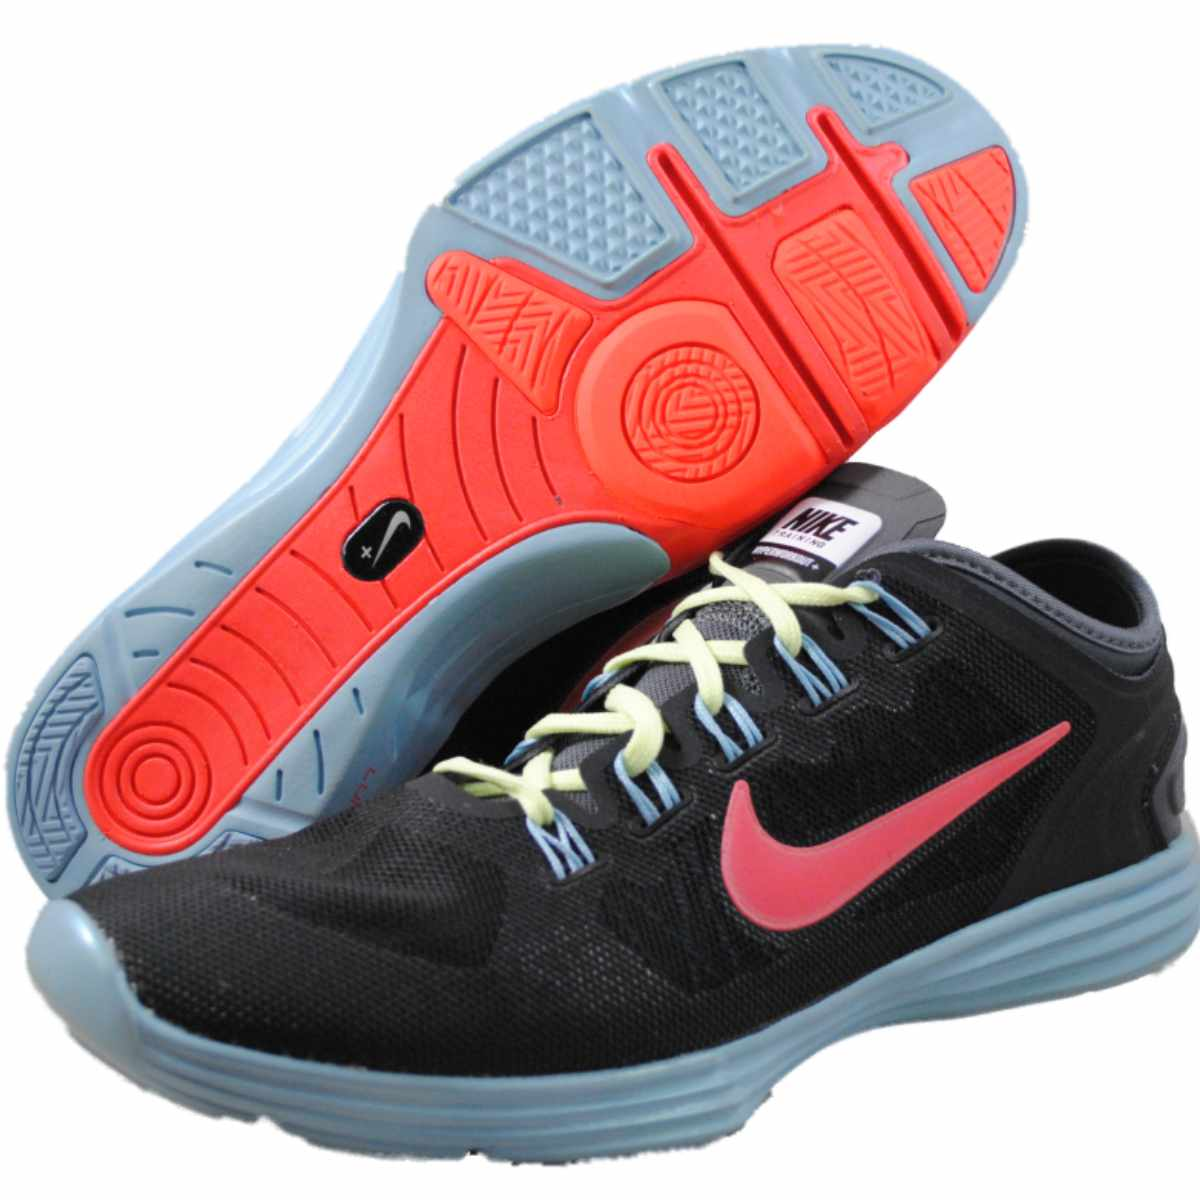 Creative Home  Nike  Nike Women39s Free Cross Compete Training Shoe Light